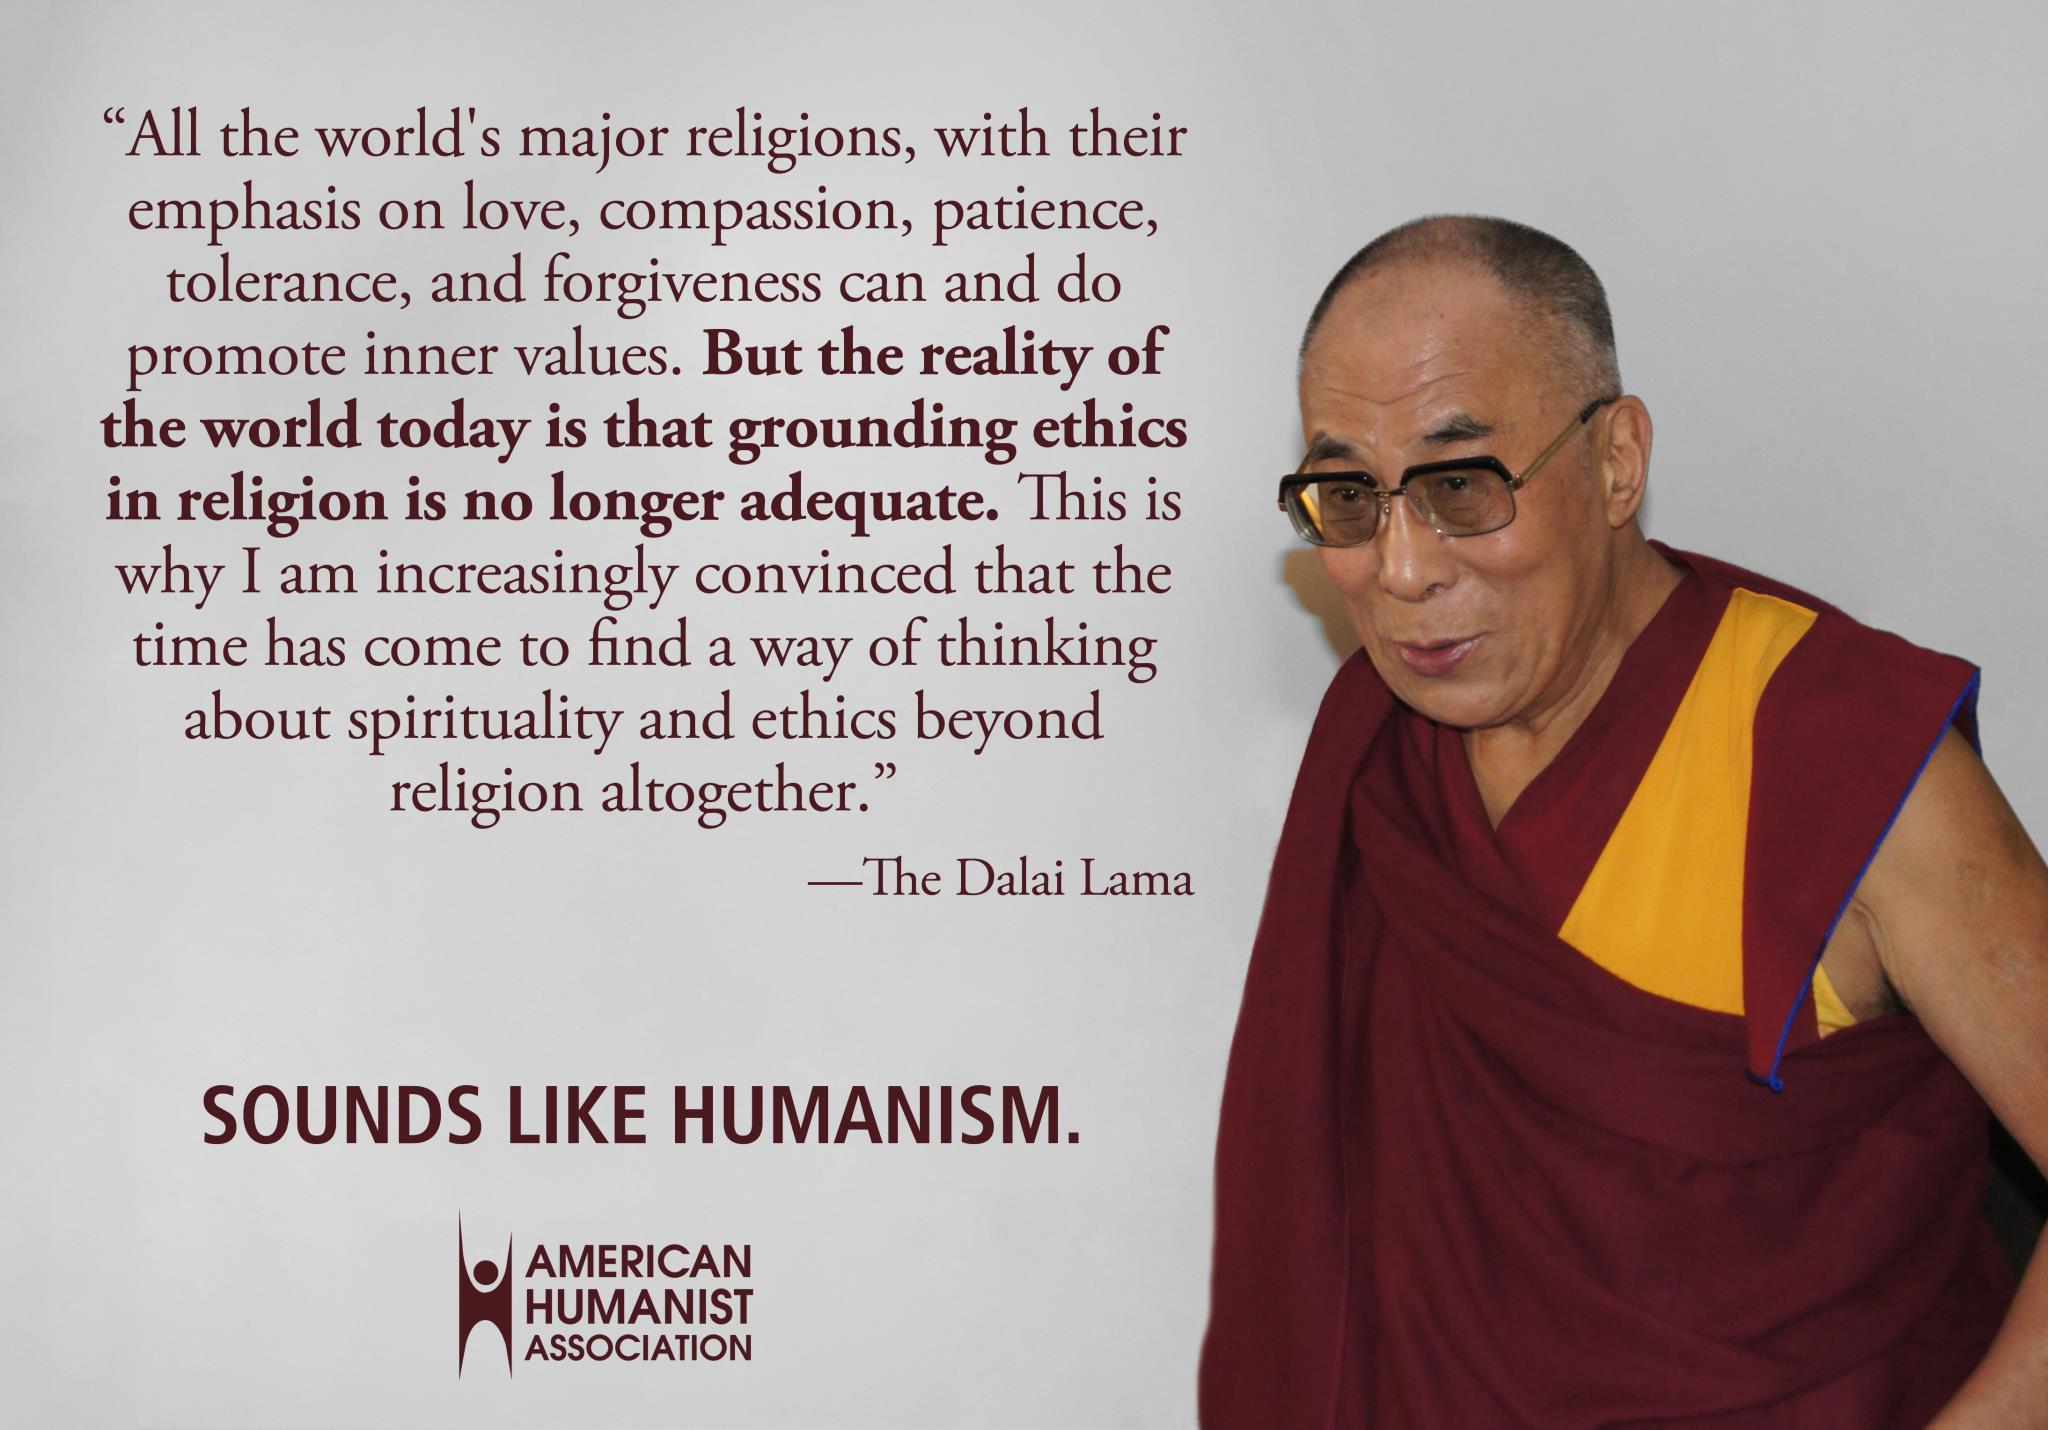 62 Top Humanism Quotes And Sayings